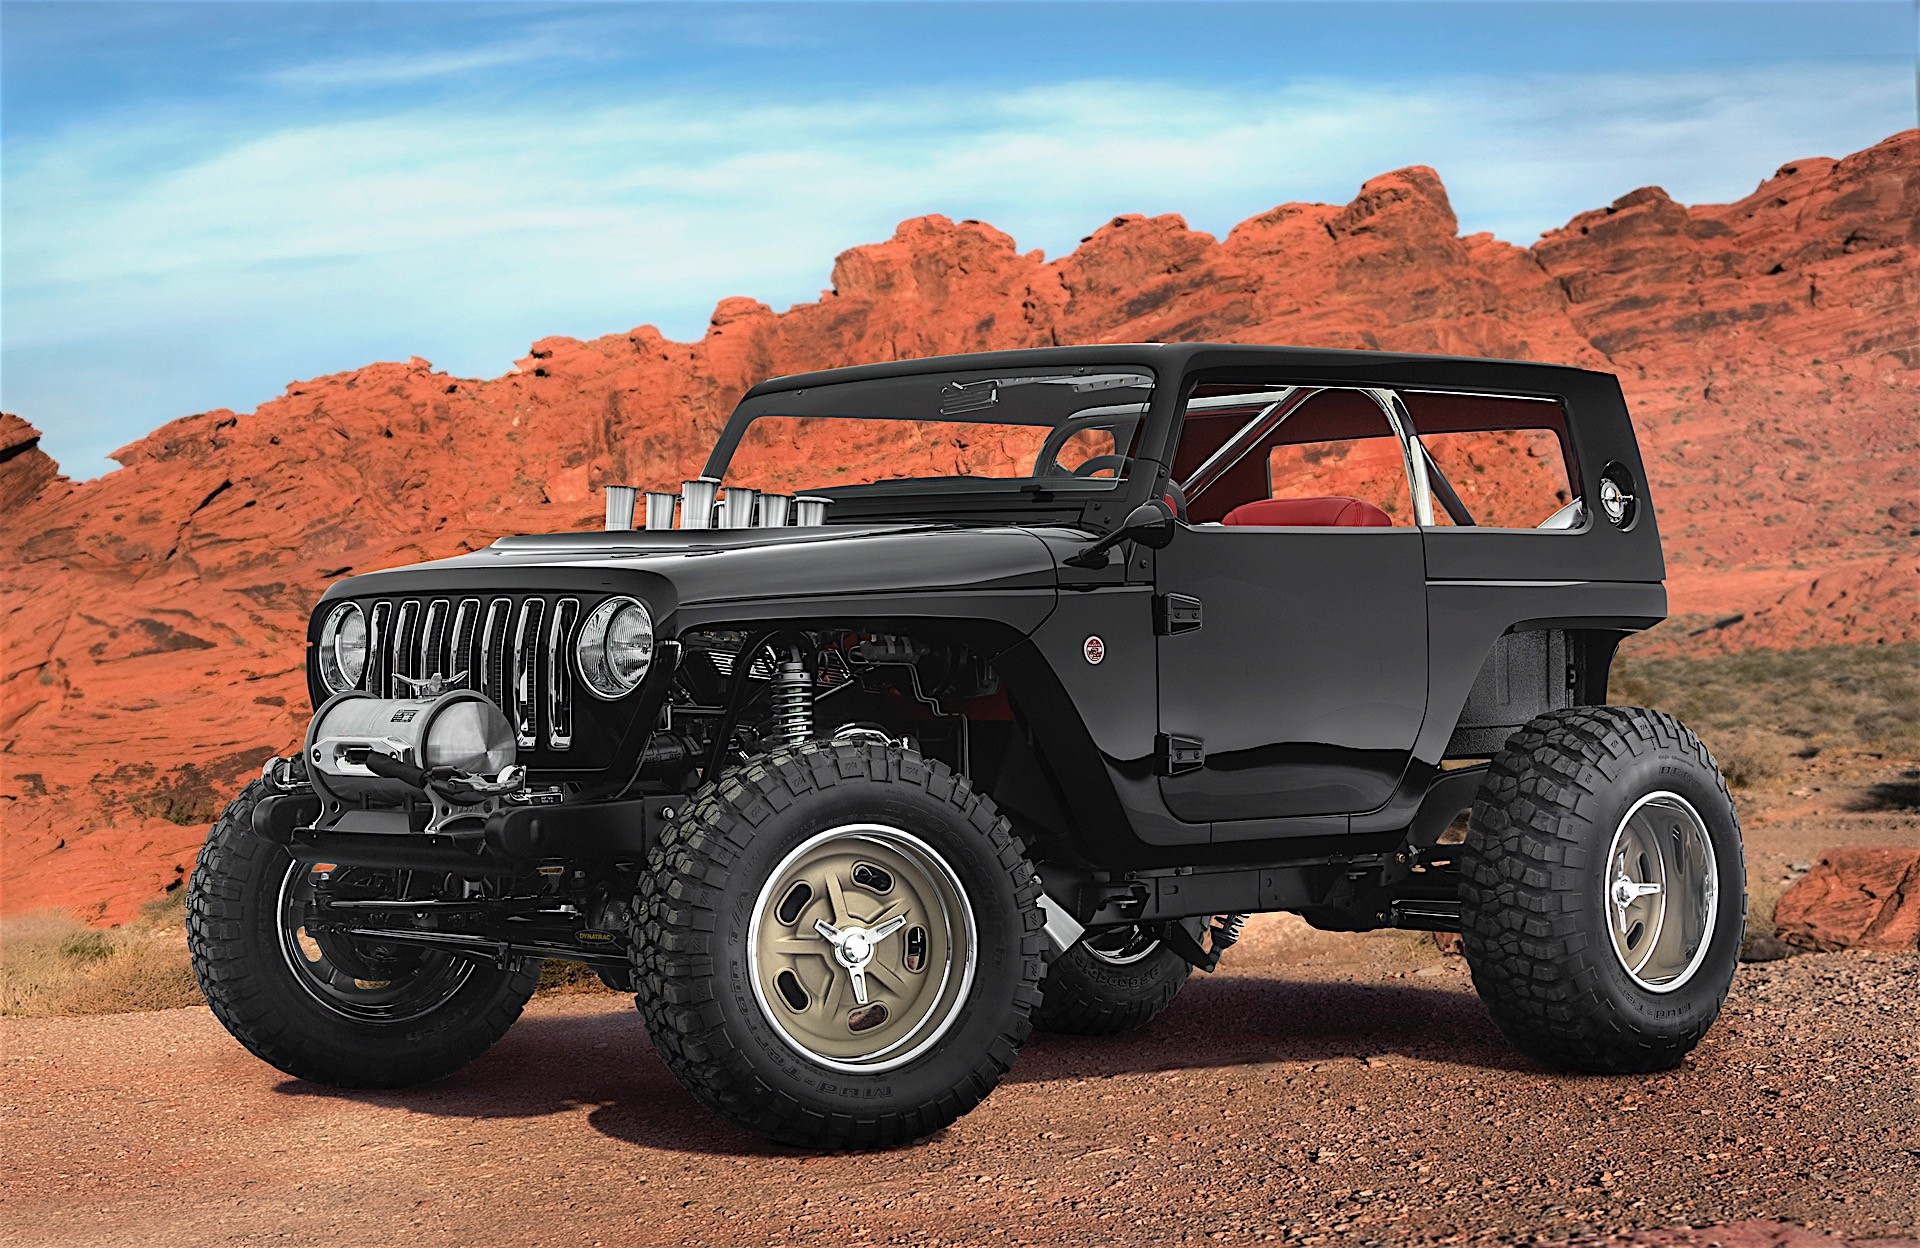 jeep unveils several concept vehicles for 2017 moab easter jeep safari autoevolution. Black Bedroom Furniture Sets. Home Design Ideas